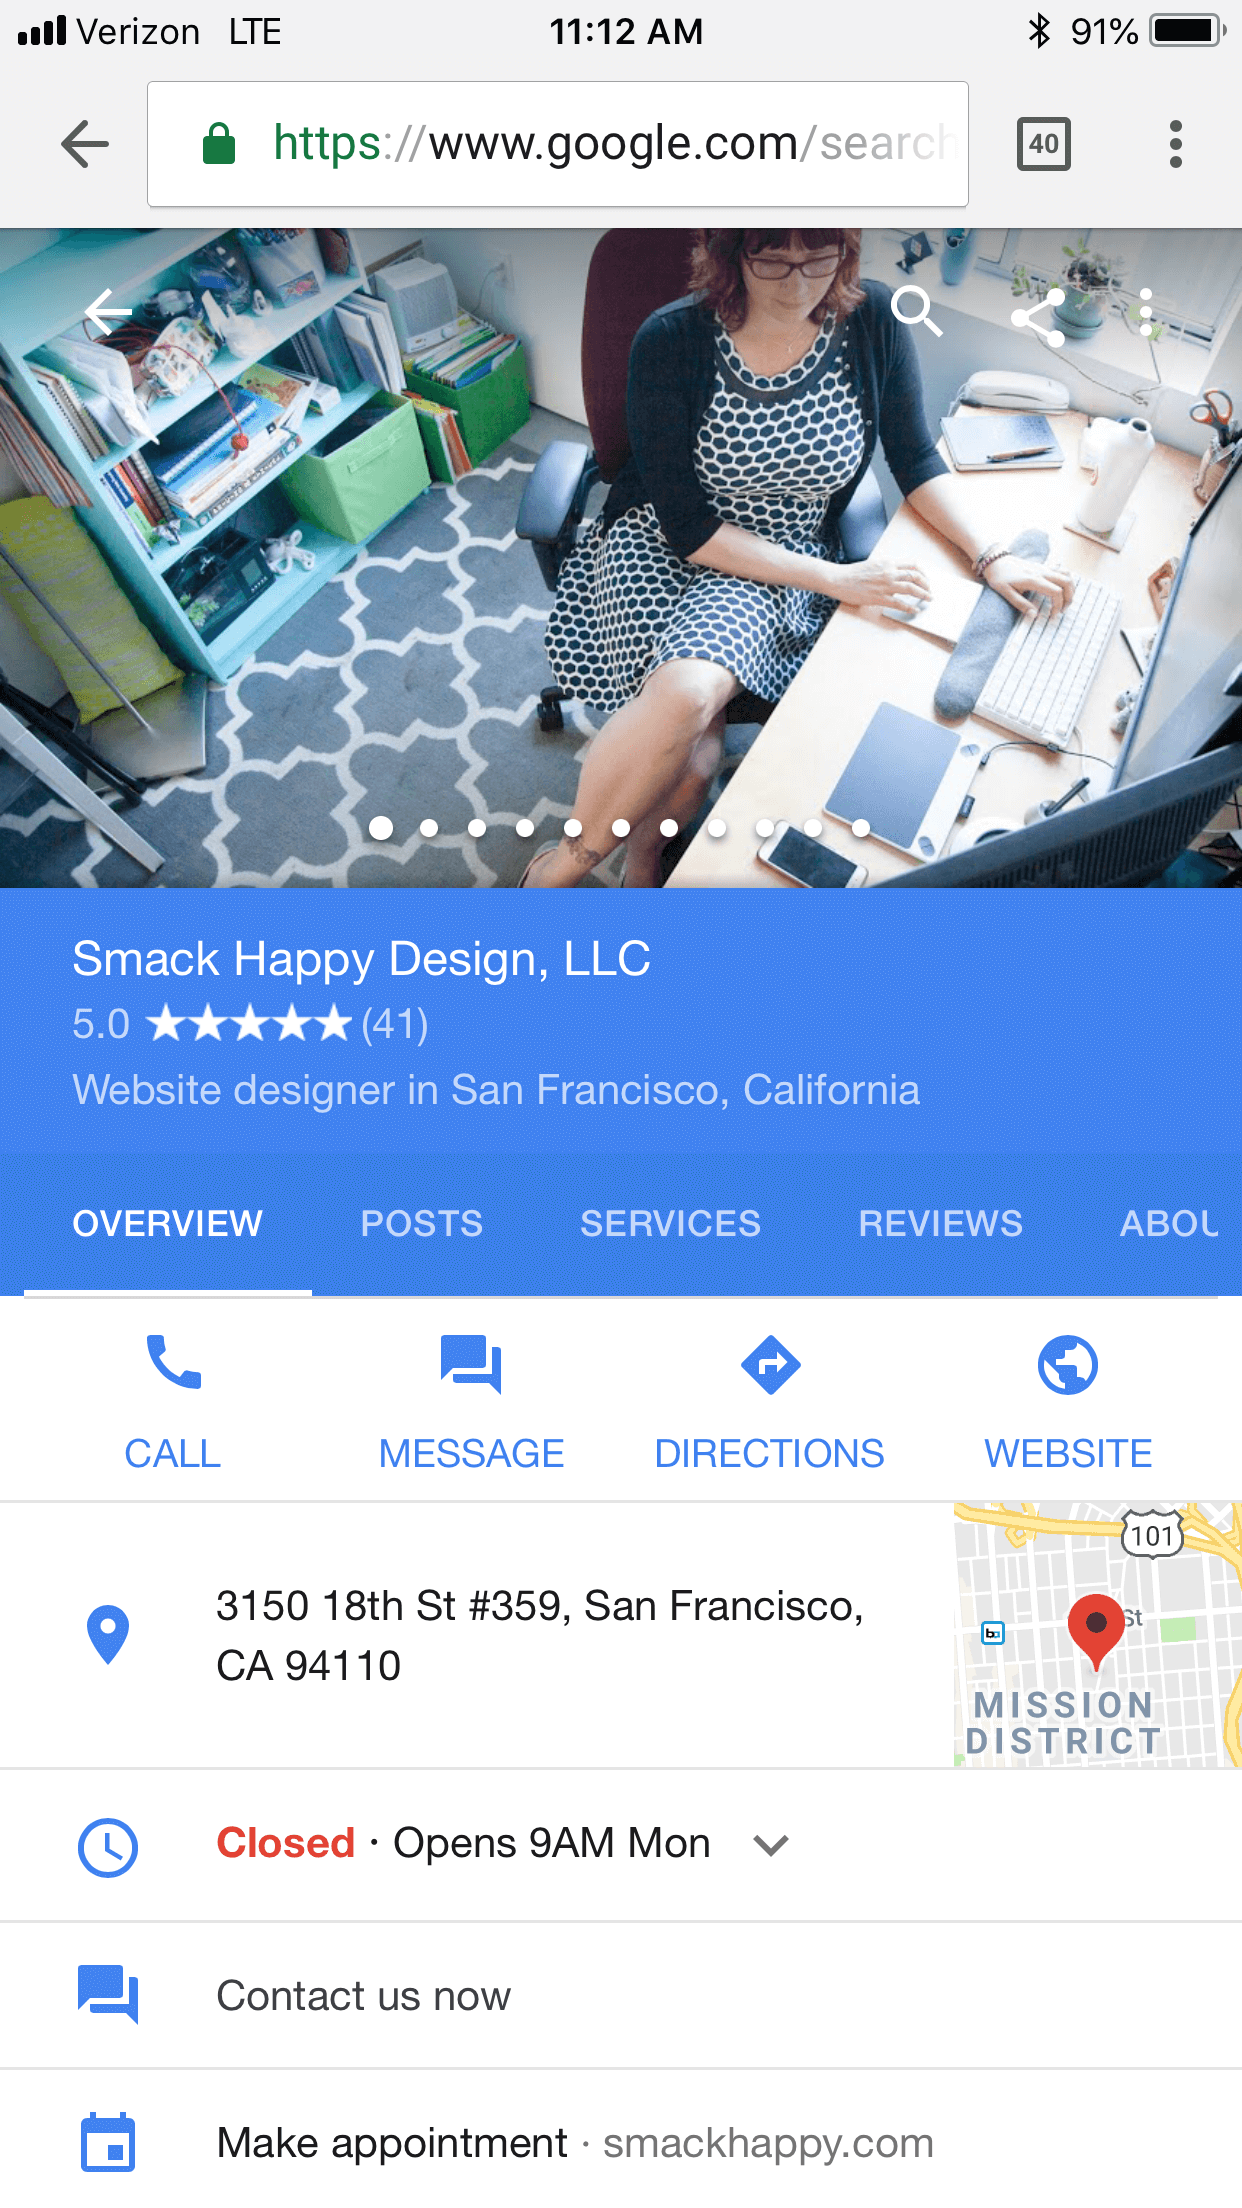 Google My Business messaging services